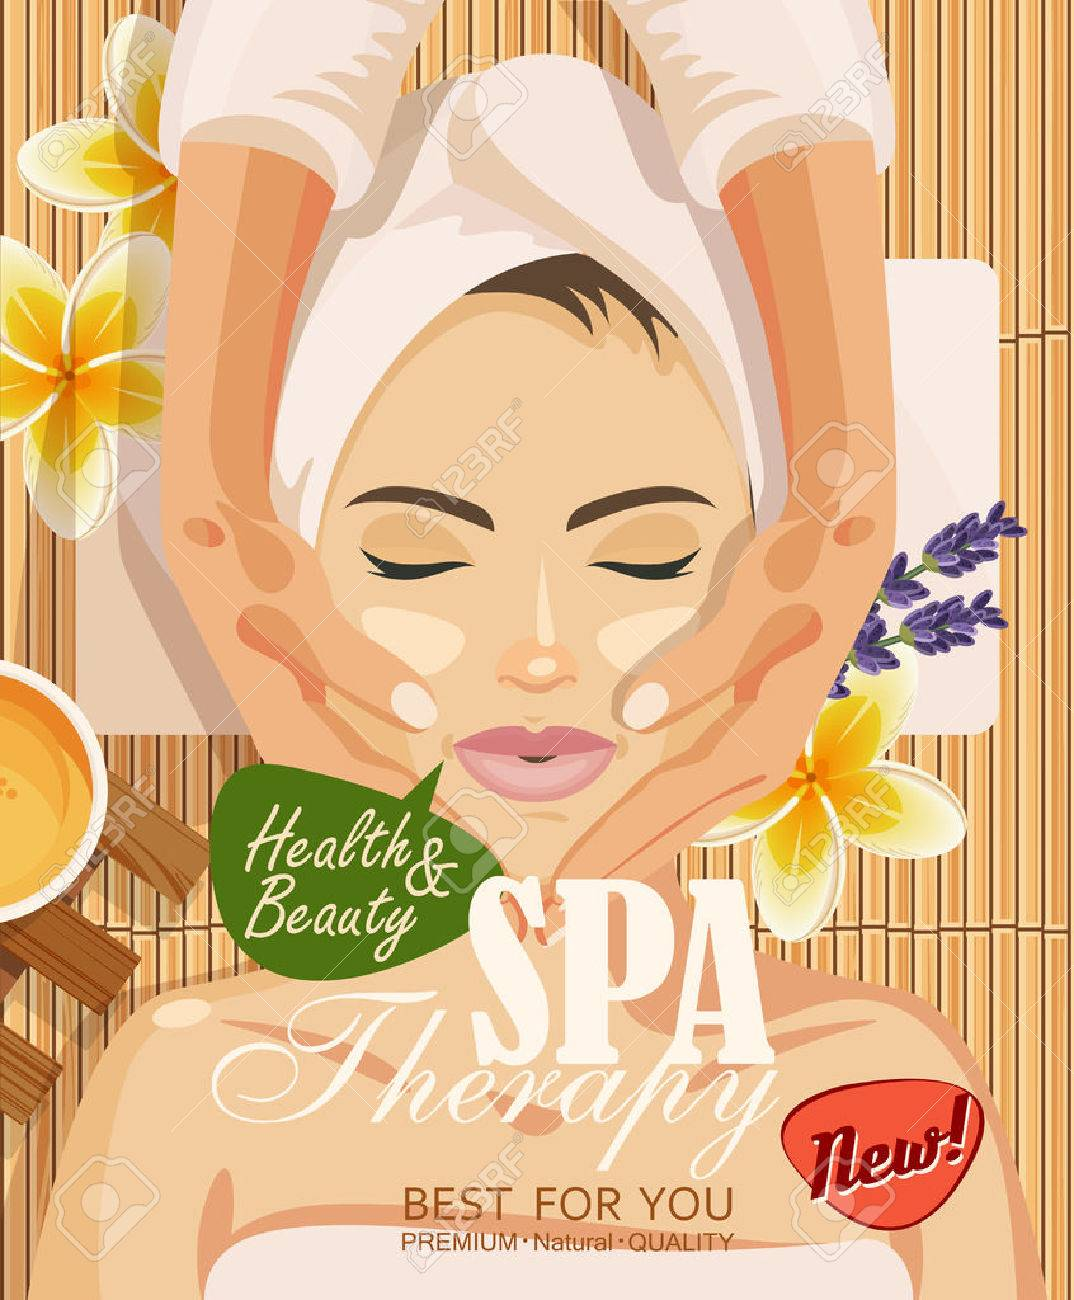 Illustration Woman Taking Facial Massage Treatment In The Spa Royalty Free Cliparts Vectors And Stock Illustration Image 43938515